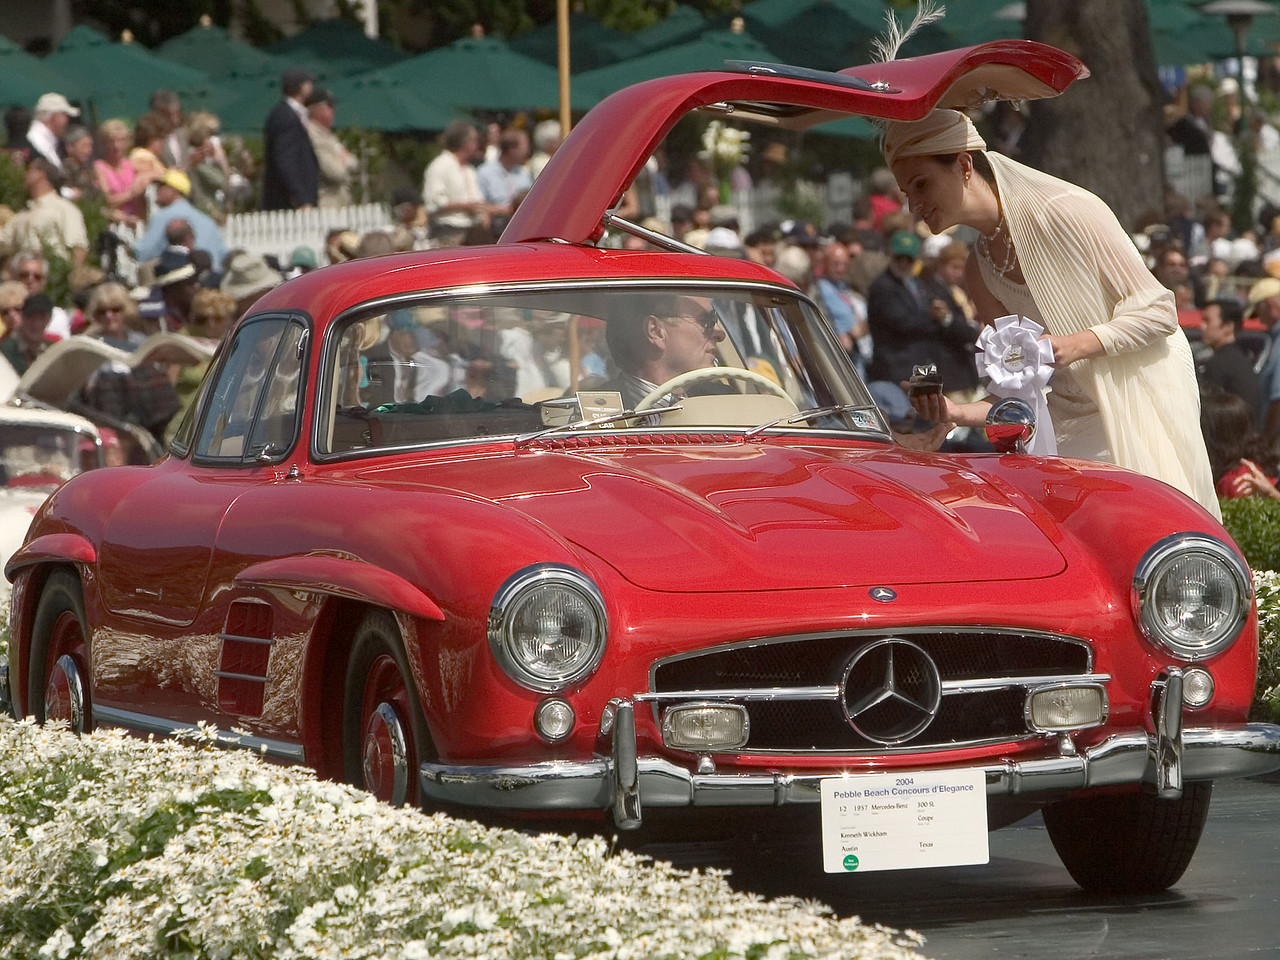 1957 Mercedes-Benz 300 SL Coupe.